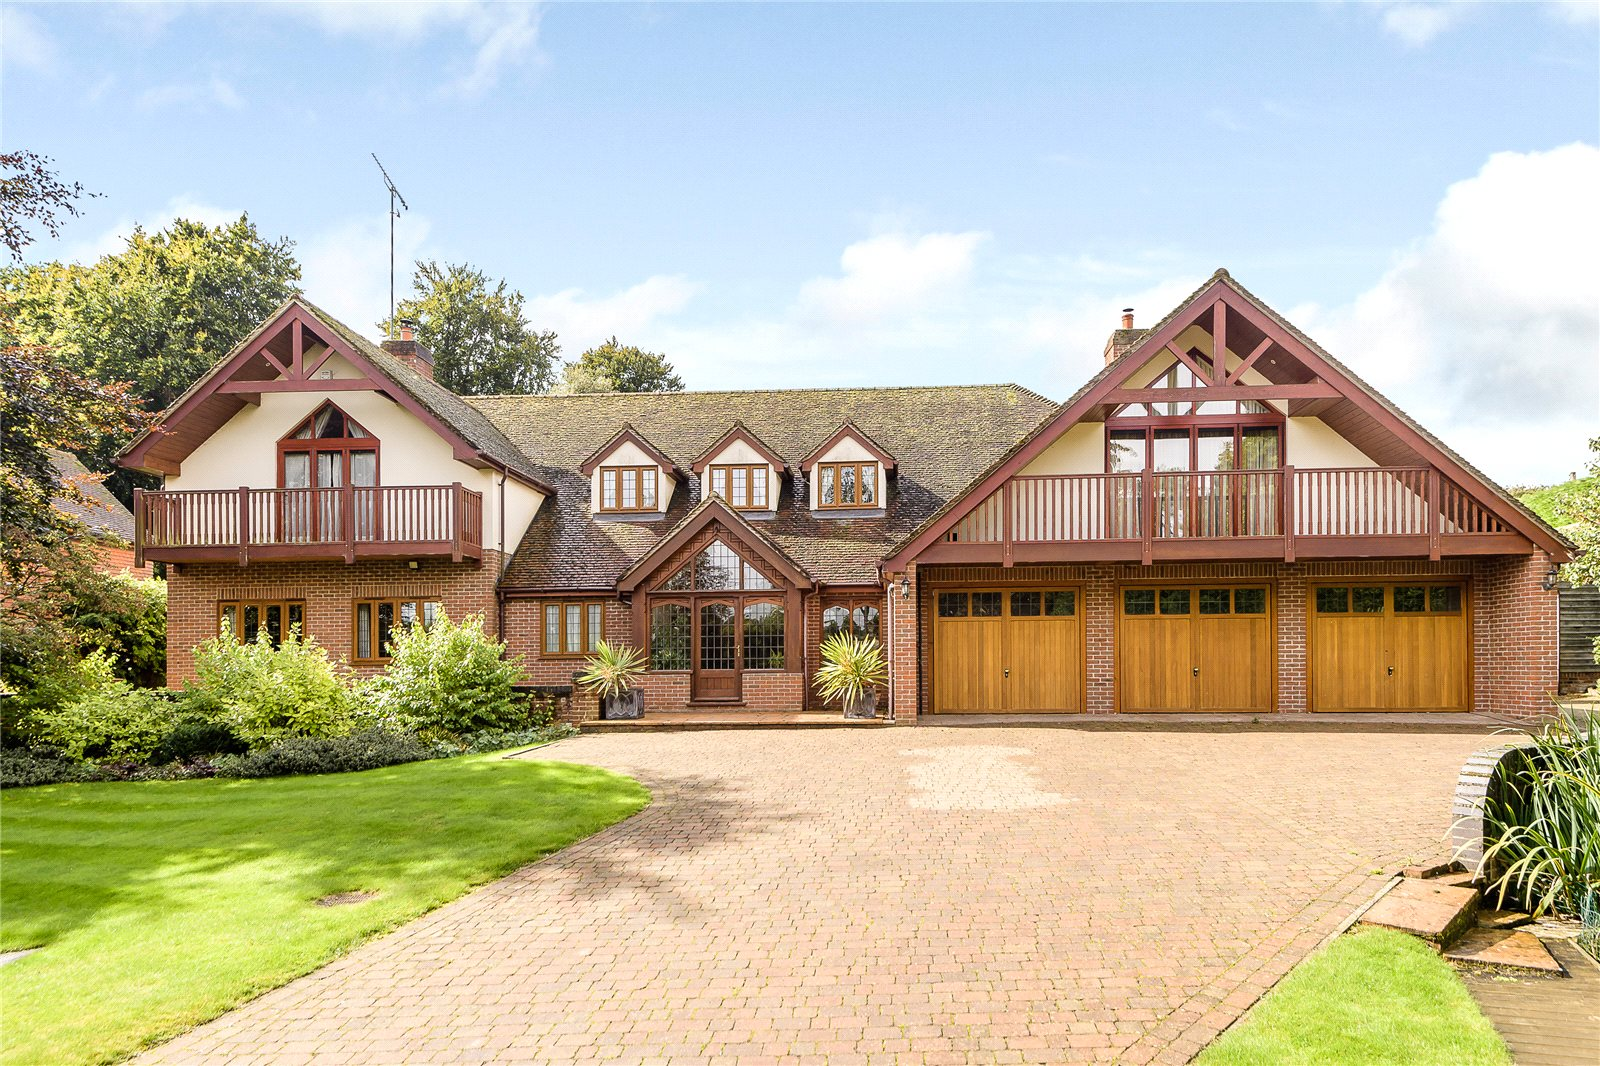 Single Family Home for Sale at Moulton Road, Kennett, Newmarket, Suffolk, CB8 Newmarket, England